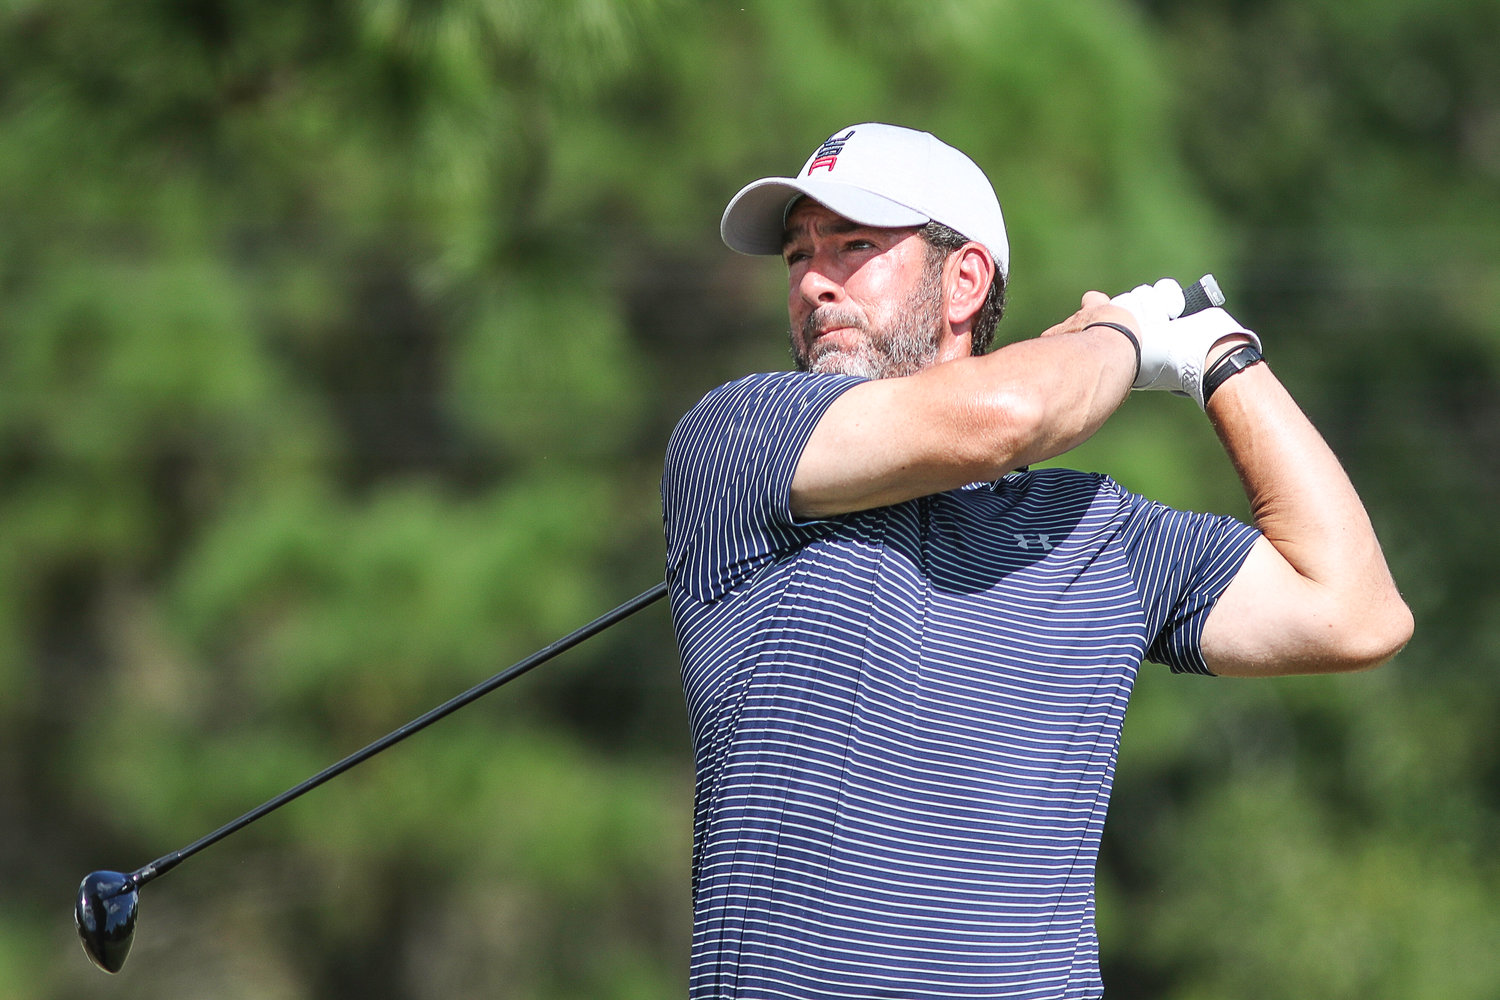 Paul Tesori won the 2018 Mid-Amateur title in last year's St. Augustine Amateur, his first time playing the event. Testori started off strong with a 67 (3 under par) on Friday, but ended the tournament tied for third in the Mid-Am with a 4-over 214. Tesori has been Webb Simpson's caddie since 2011.